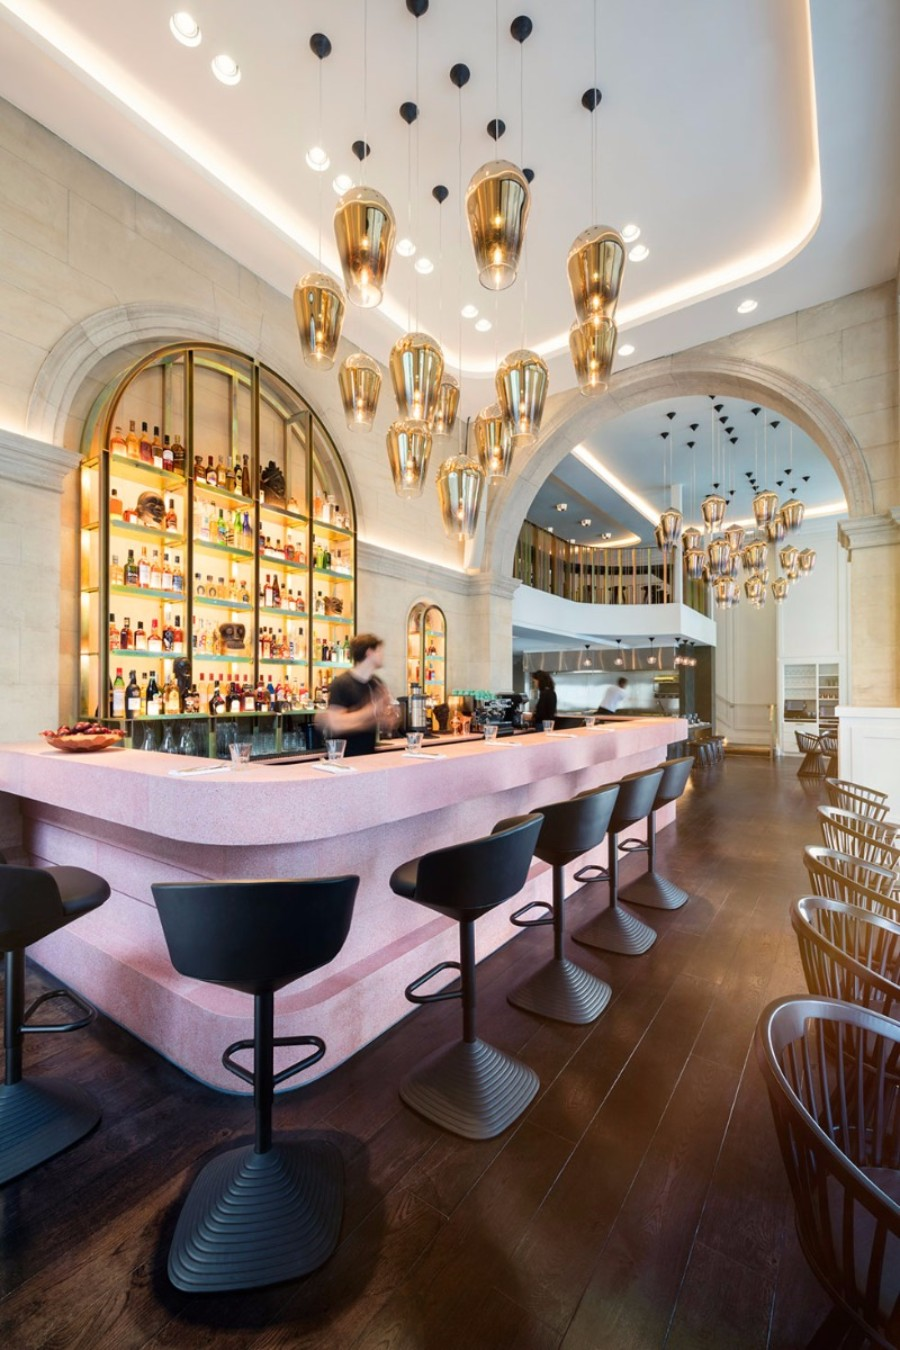 Get Surprised by This Concept Restaurant Design by Tom Dixon Tom Dixon Get Surprised by This Concept Restaurant Design by Tom Dixon Luxury Restaurants Bronte Restaurant by Tom Dixon 6